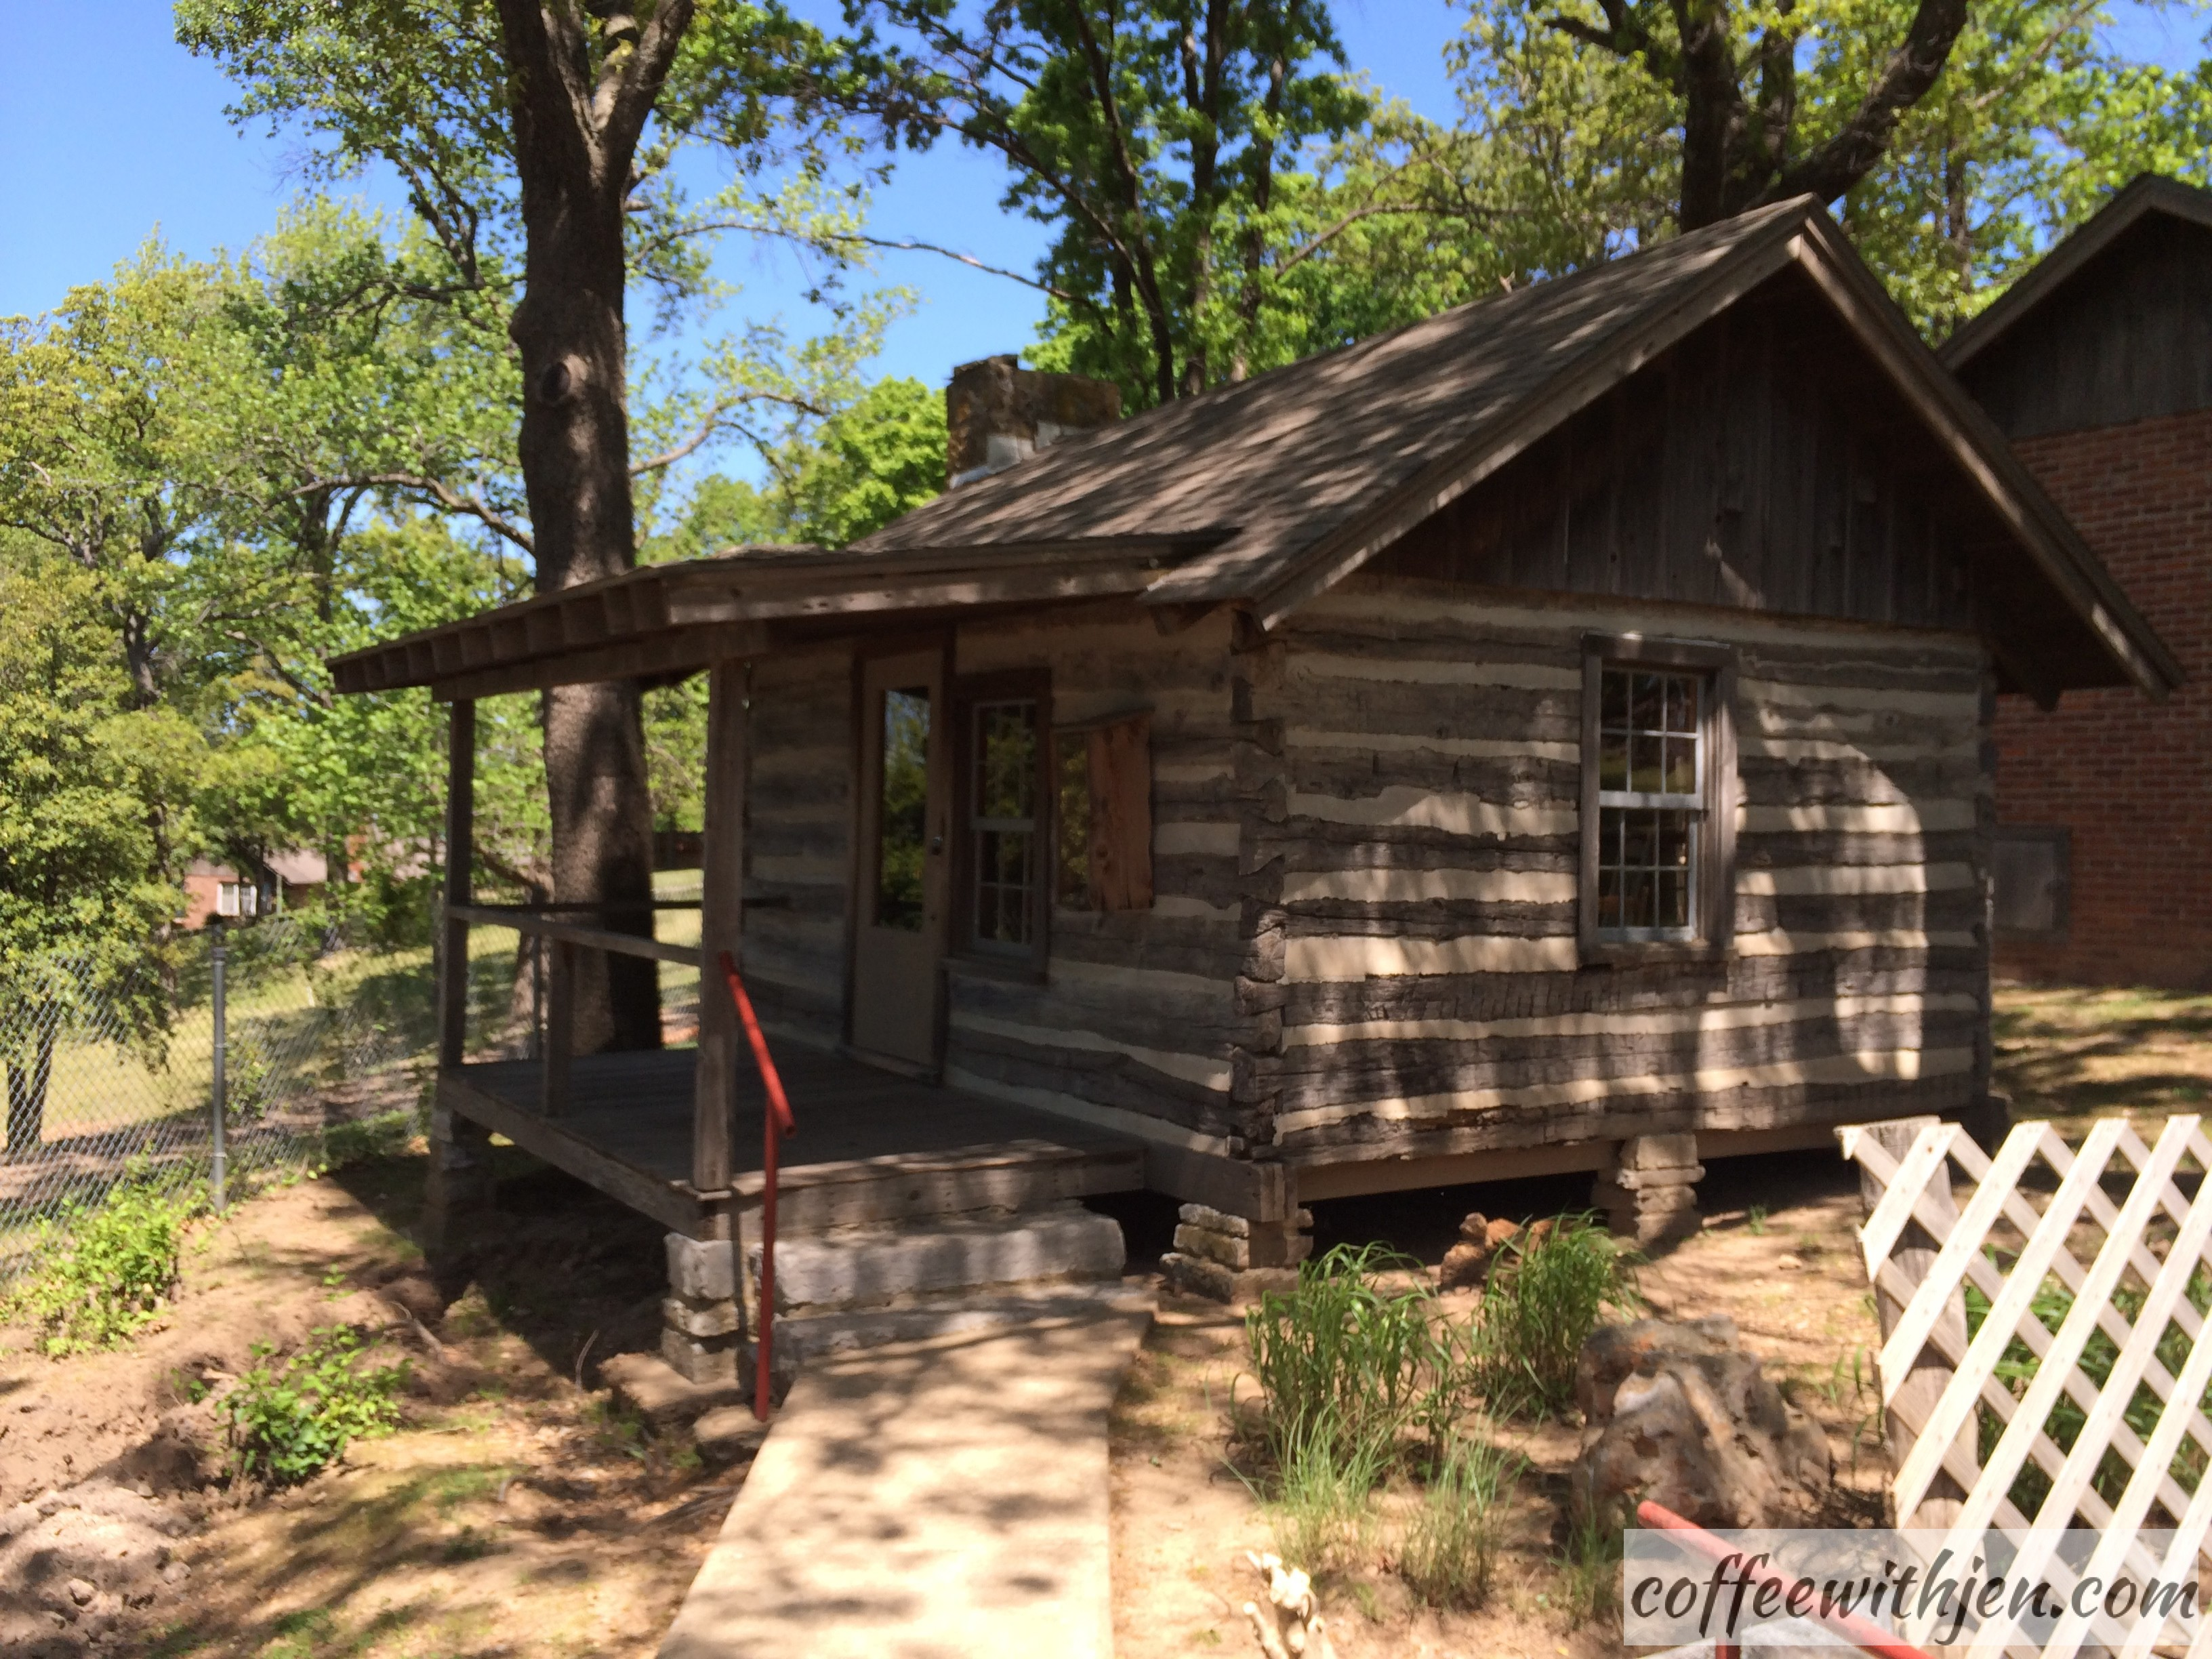 This house was reconstructed from the materials from the Van Winkle house at the Hobbs State Park. See my Spring Break post.